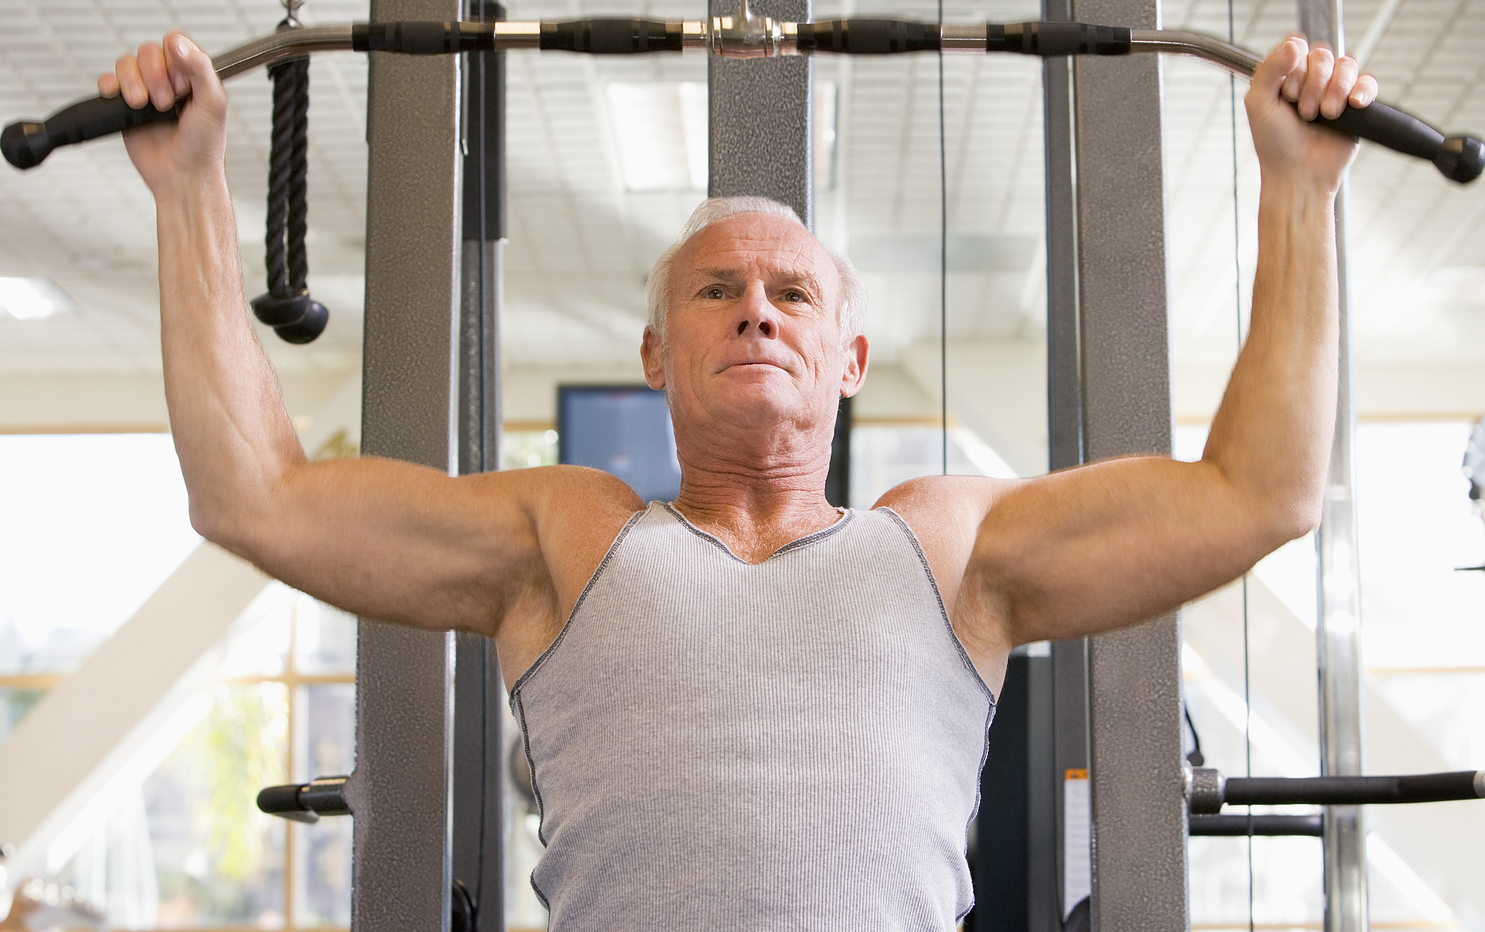 senior-fitness-with-weights